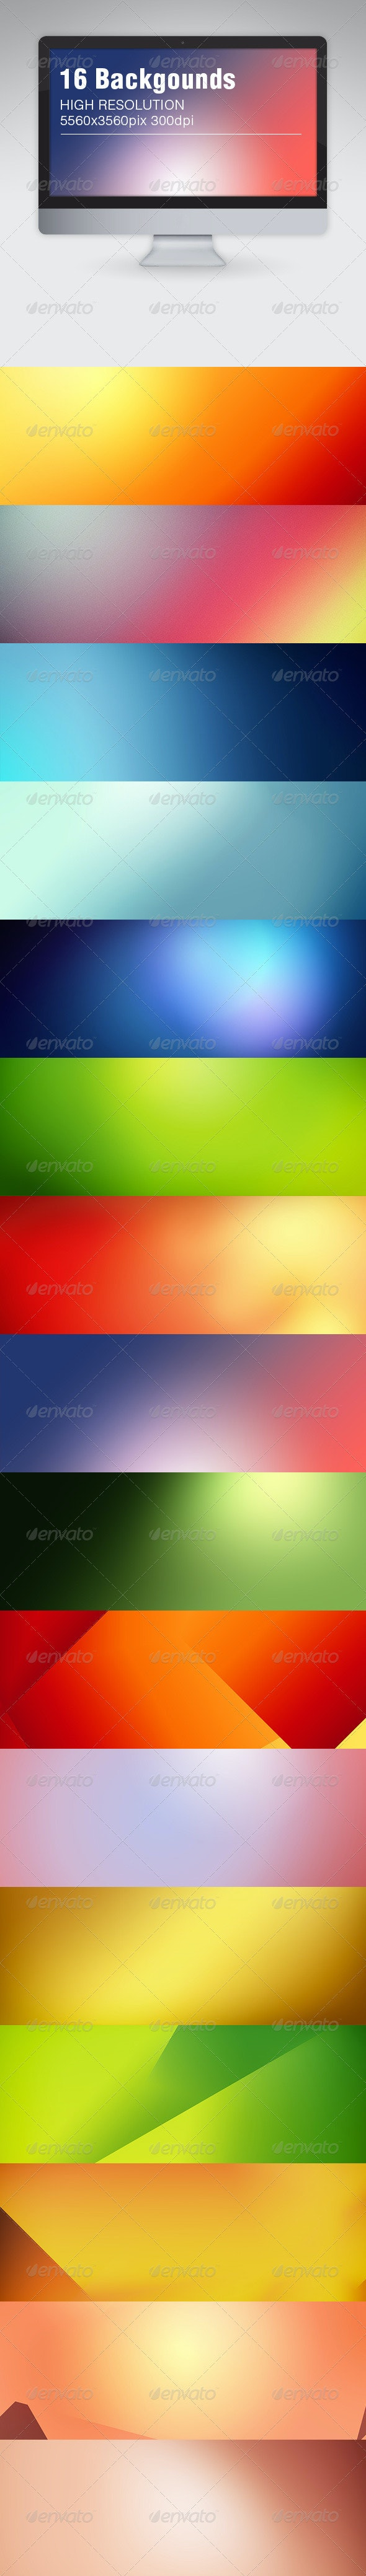 16 Blurred Backgrounds - Backgrounds Graphics